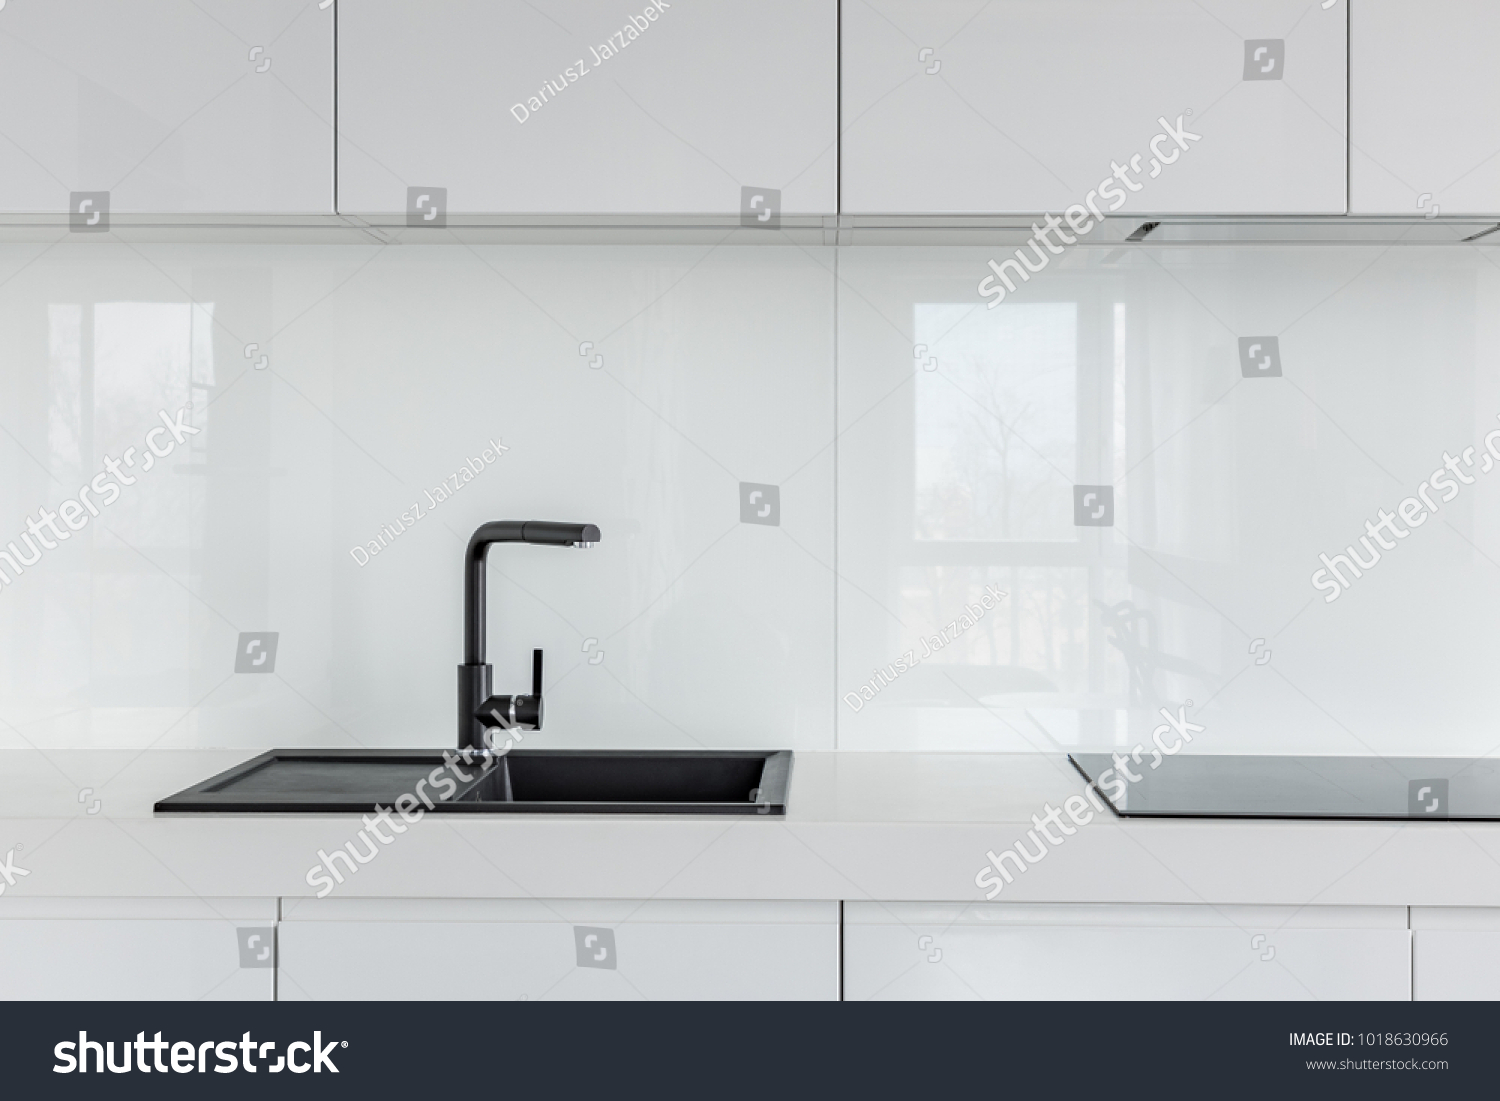 High Gloss Cabinets Countertop Black Composite Stock Photo (Download ...